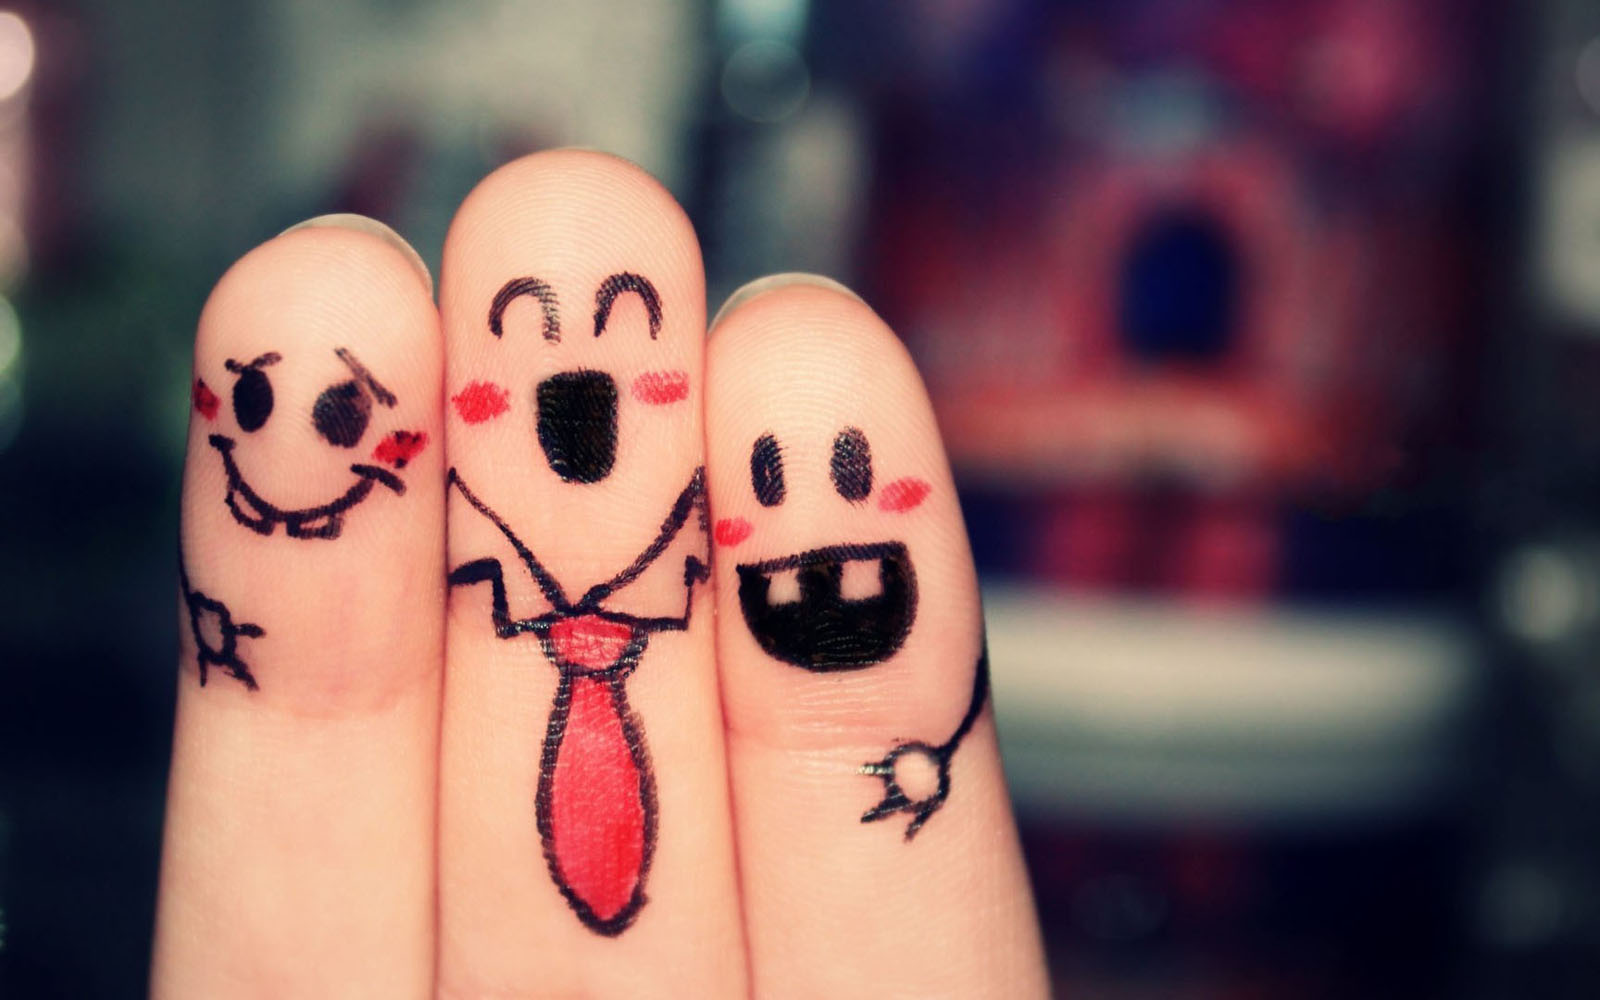 Funny Finger Faces Wallpapers 1600x1000